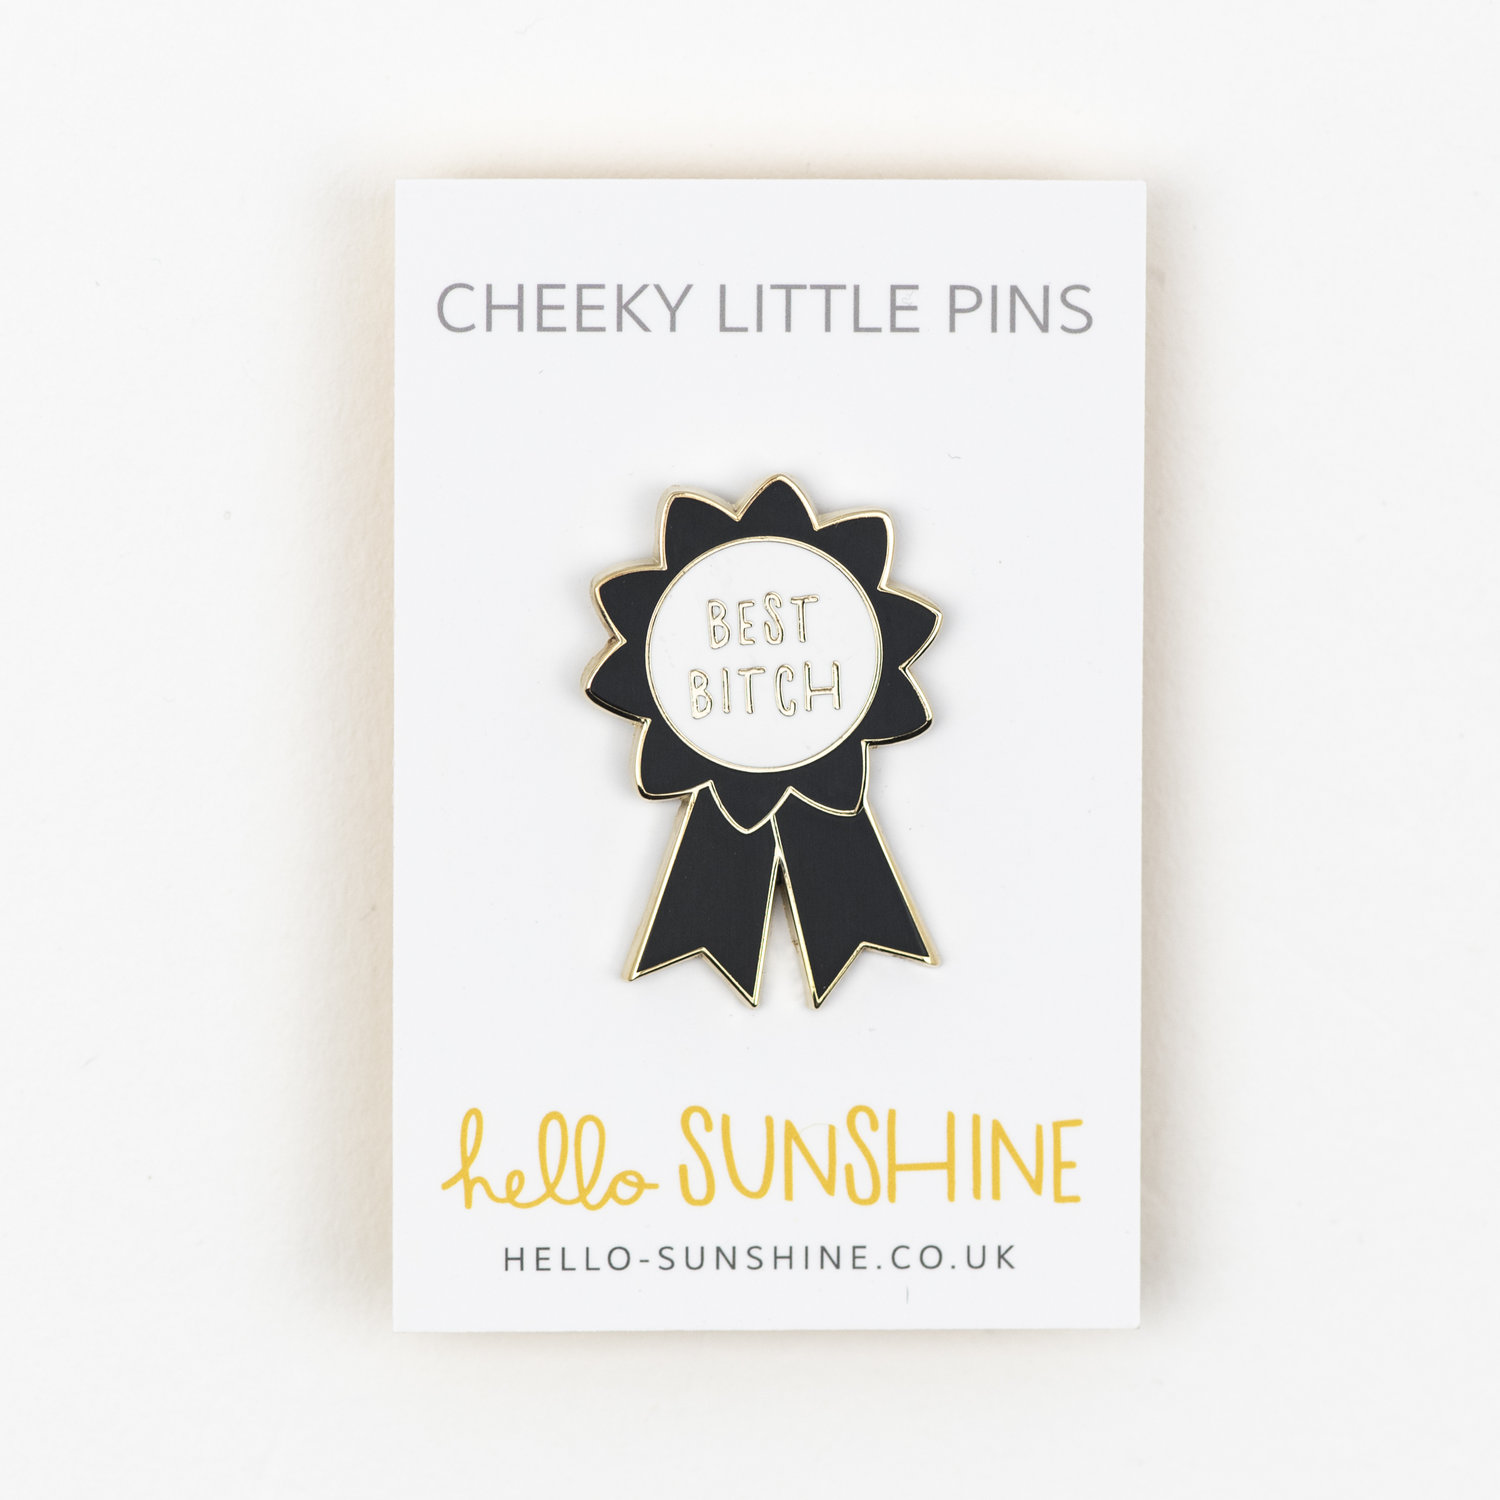 Gest Friend Gifts Under 10 Gift for Her Sister Gift Enamel Pin Love Enamel Pin Gifts for Women Love Gifts for Him Gift for Girlfriend